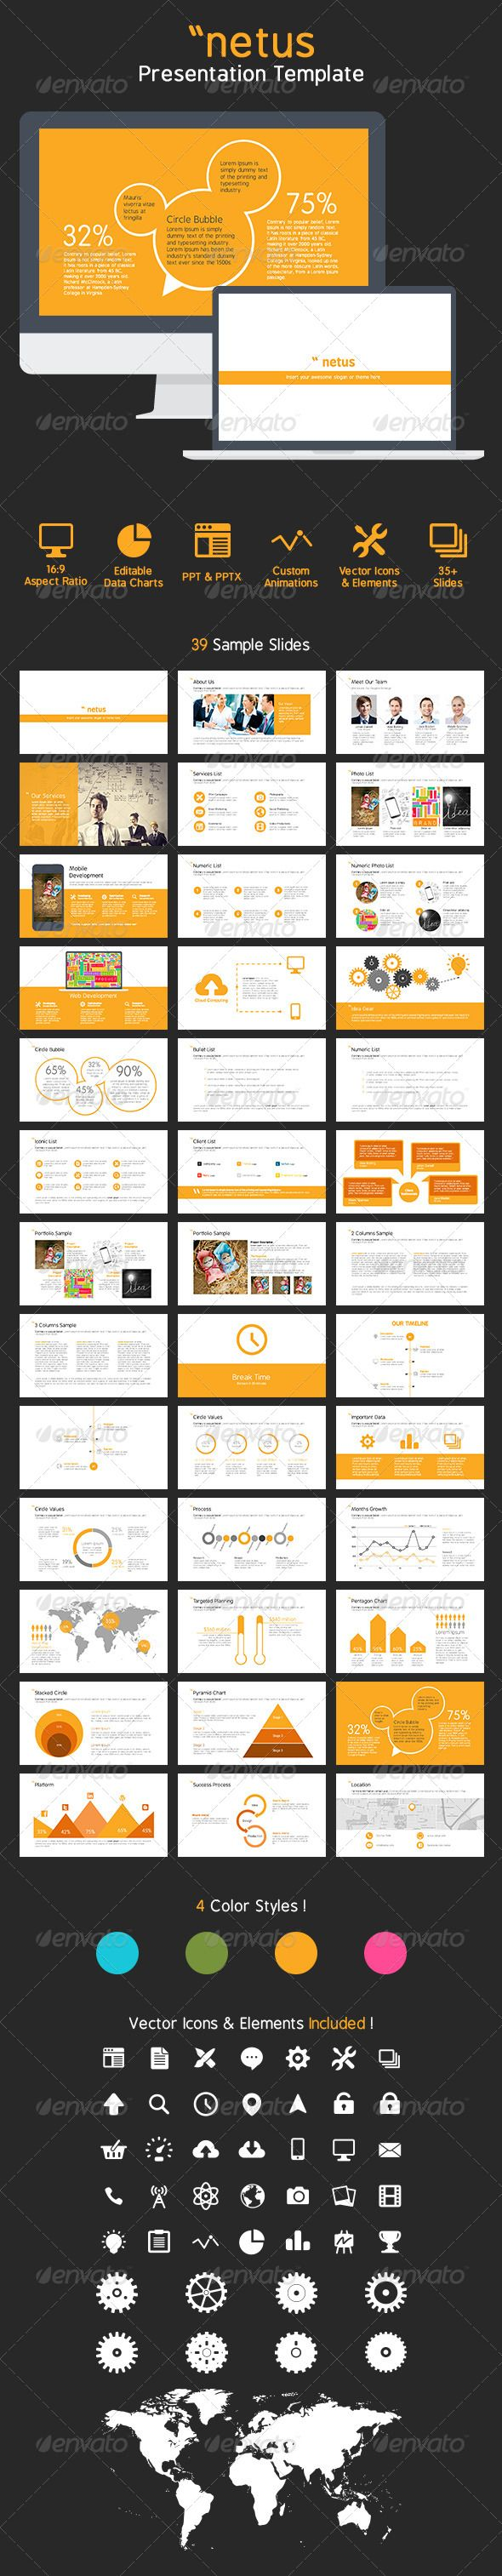 Netus PowerPoint Presentation Templates Powerpoint Template